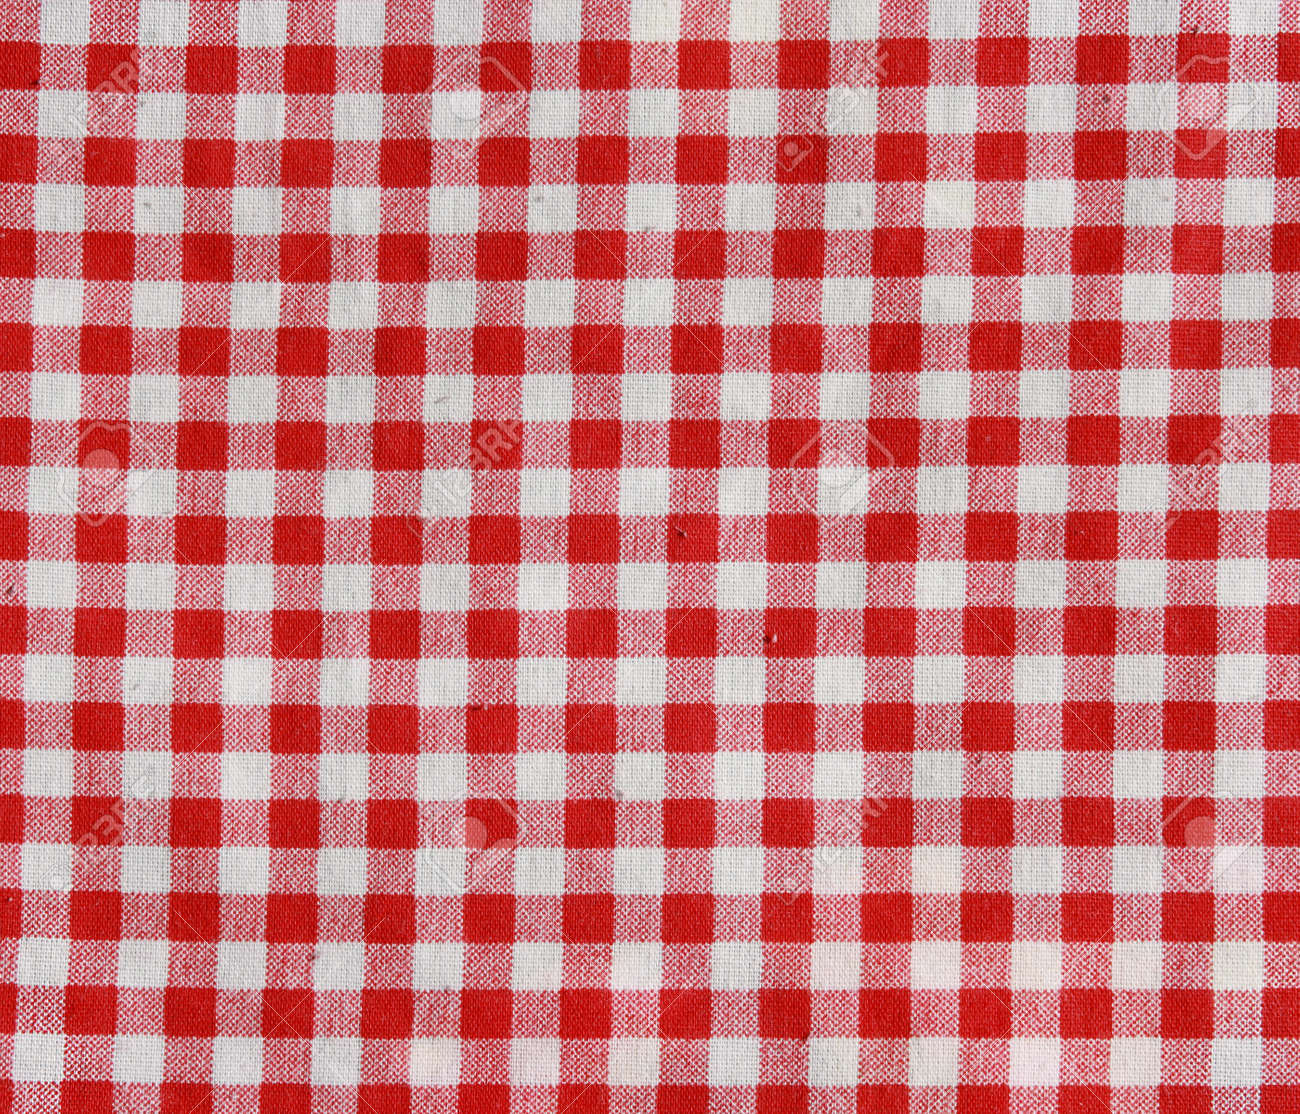 176478cafe2 Texture of a red and white checkered picnic blanket Red linen tablecloth  Stock Photo - 27712608